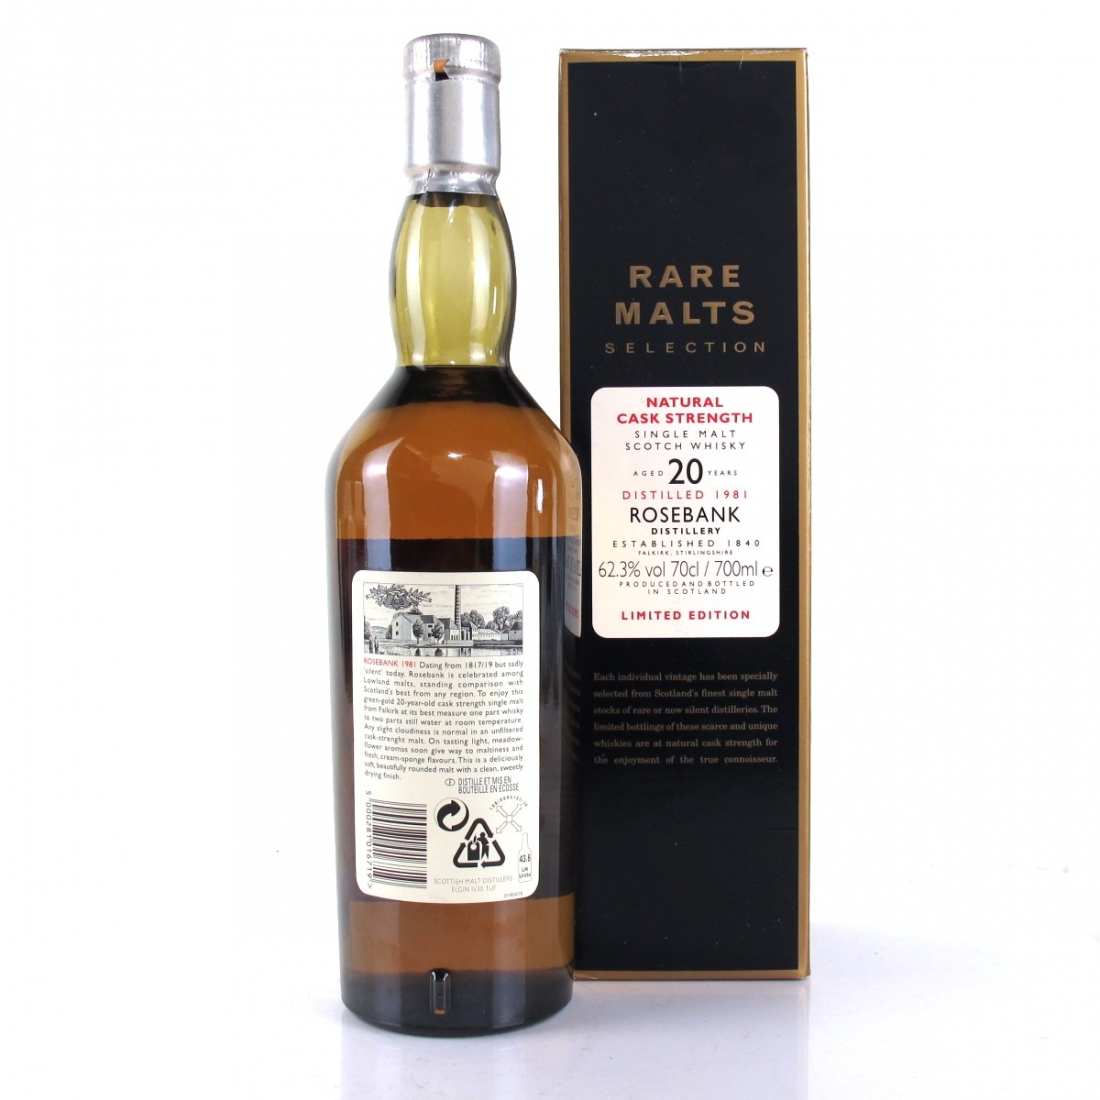 Rosebank 1981 Rare Malt 20 Year Old / 62.3%